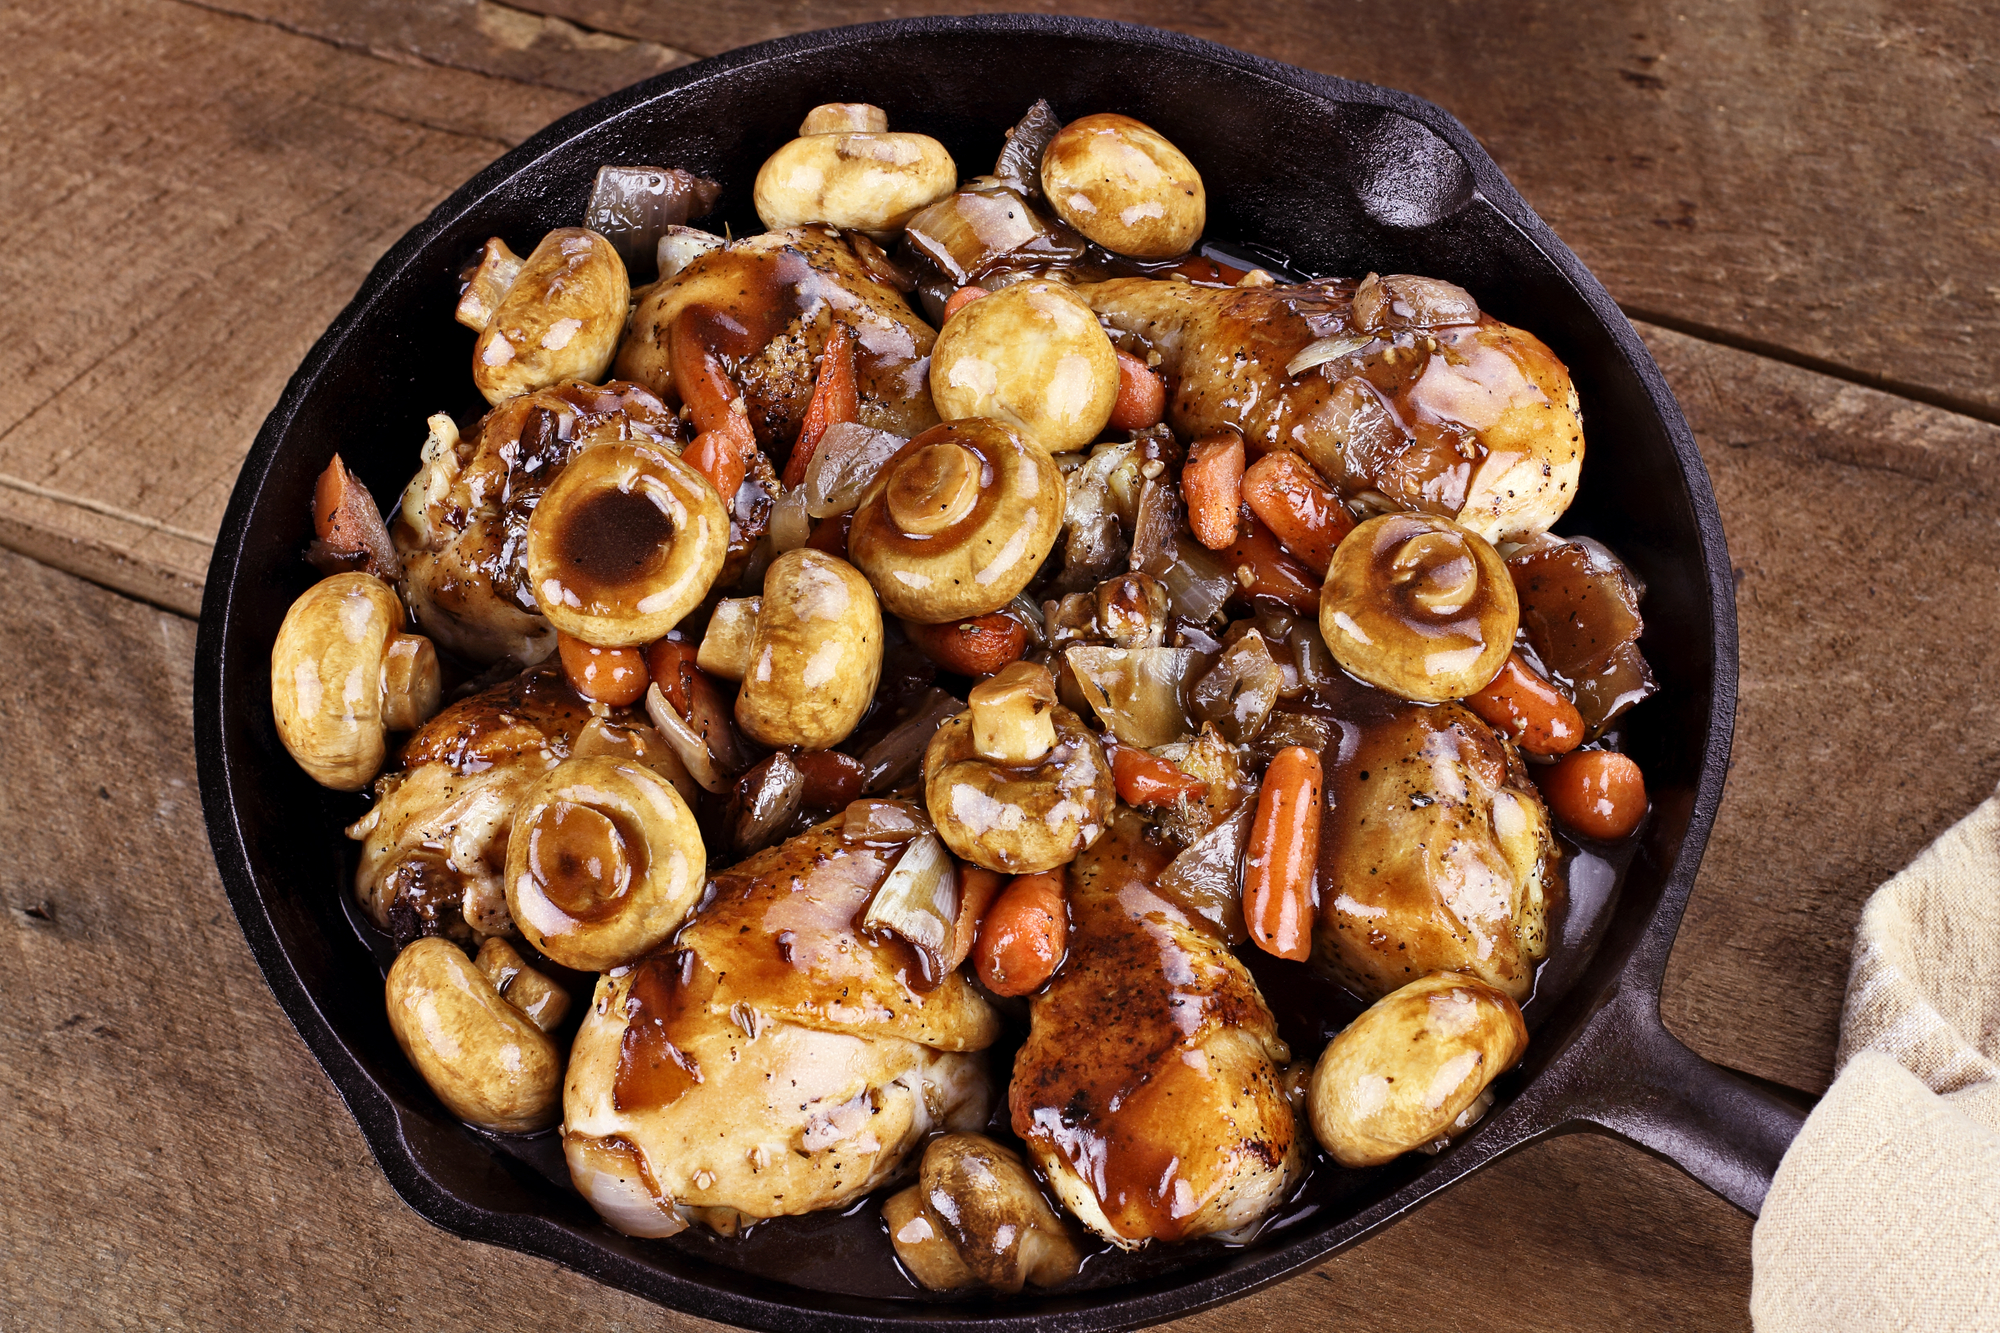 Depositphotos 68464895 l 2015 Roast Chicken and Mushrooms With Red Wine Sauce